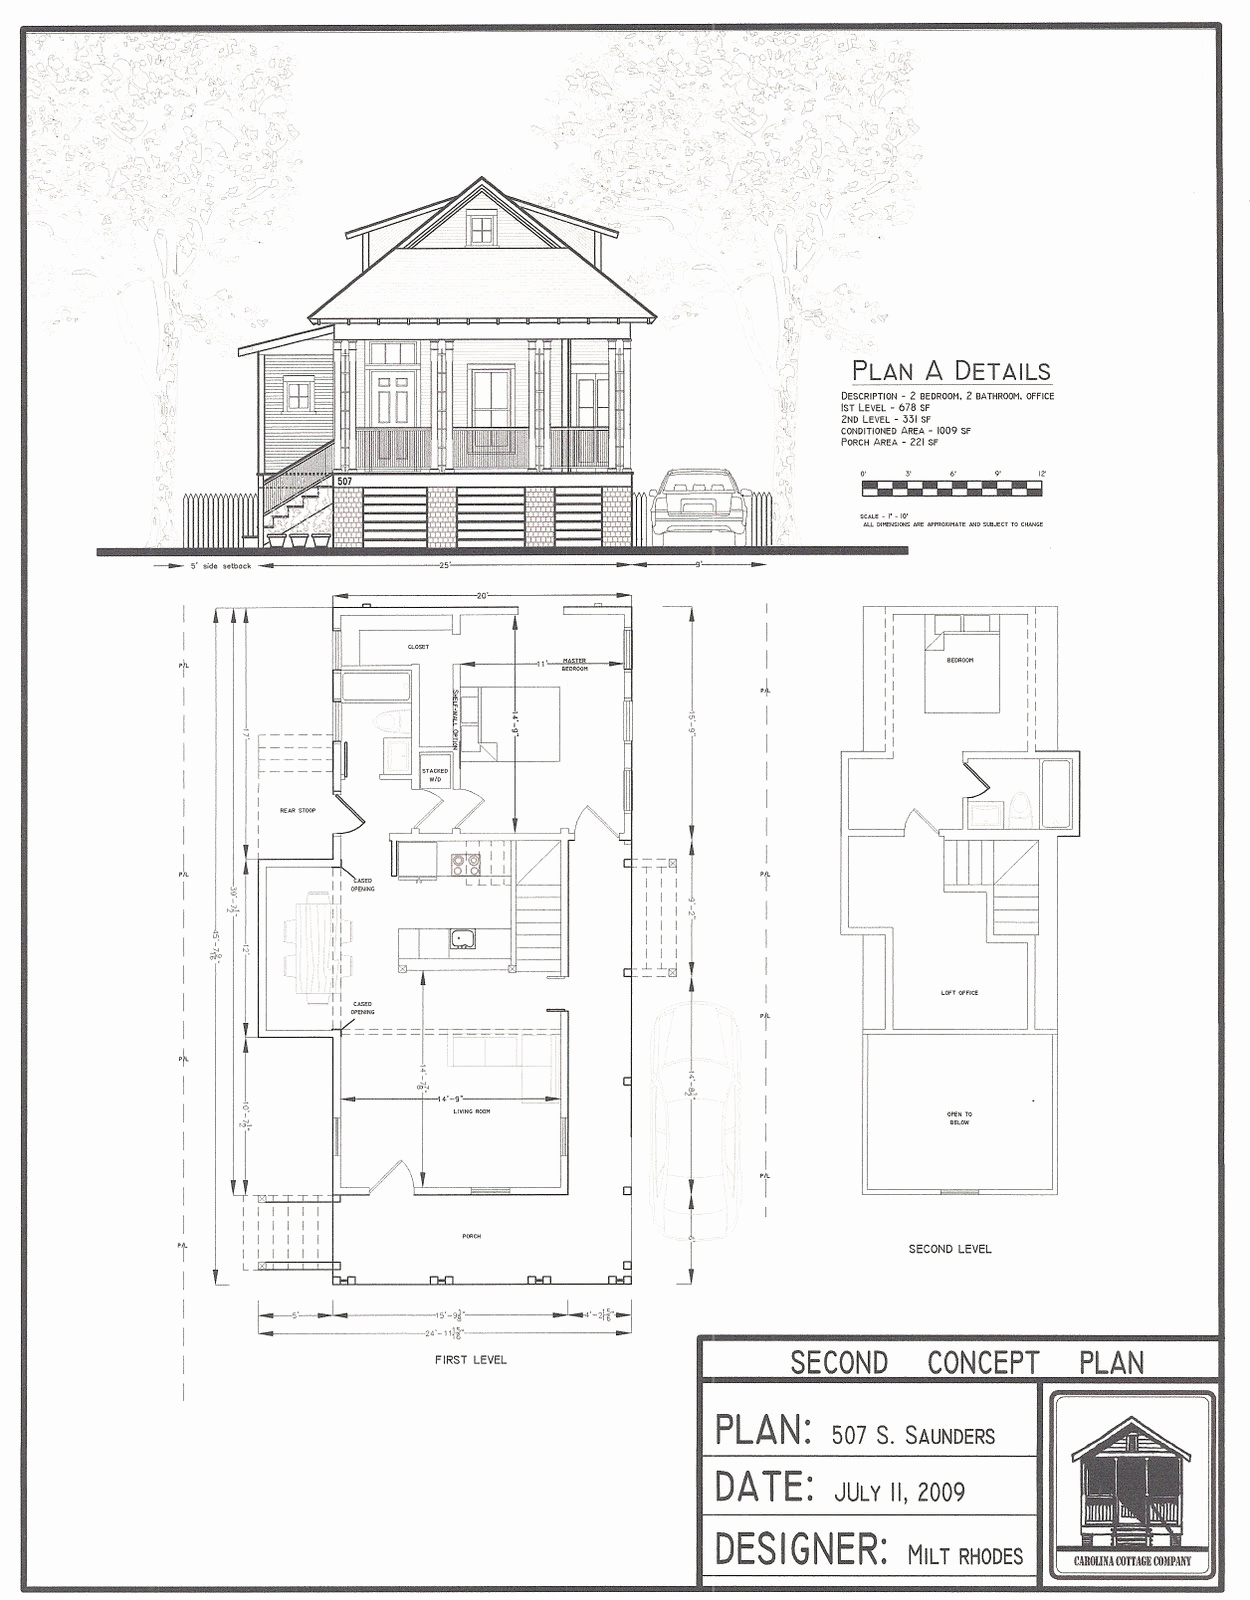 Chinese House Drawing at GetDrawings.com | Free for personal use ...